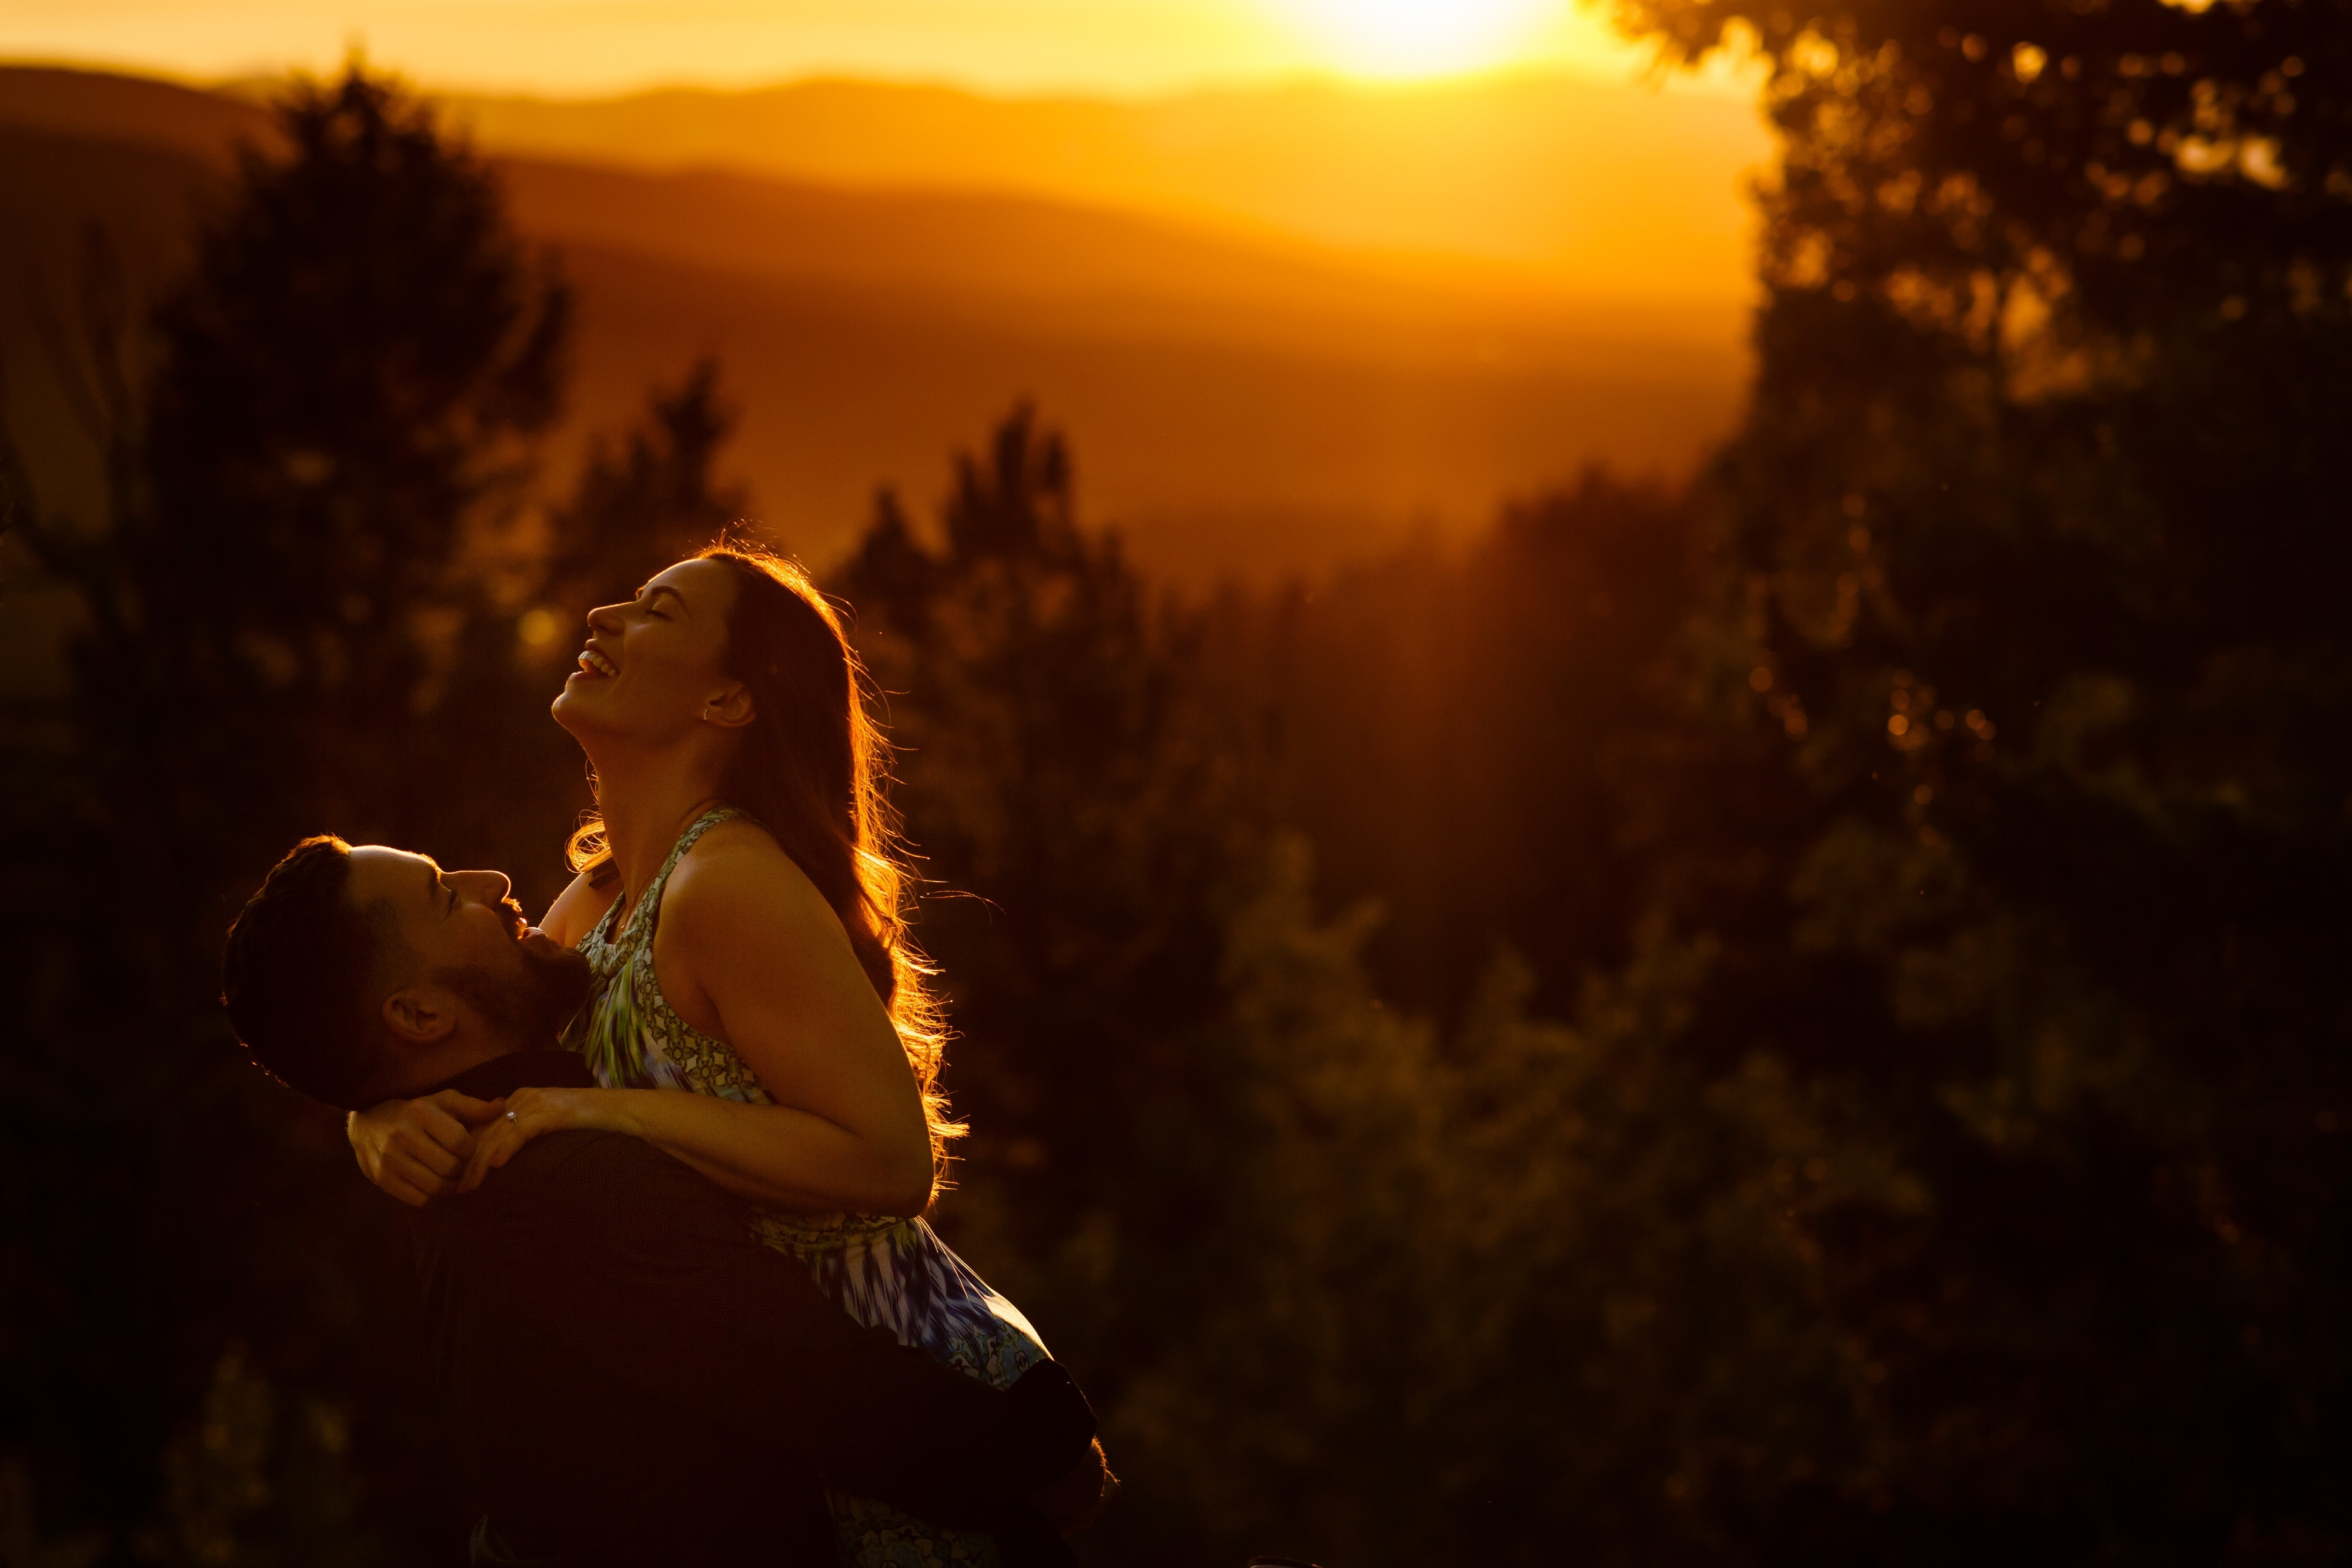 Nick picks up Sharon as the sun sets during their colorful engagement in Golden Gate Canyon State Park